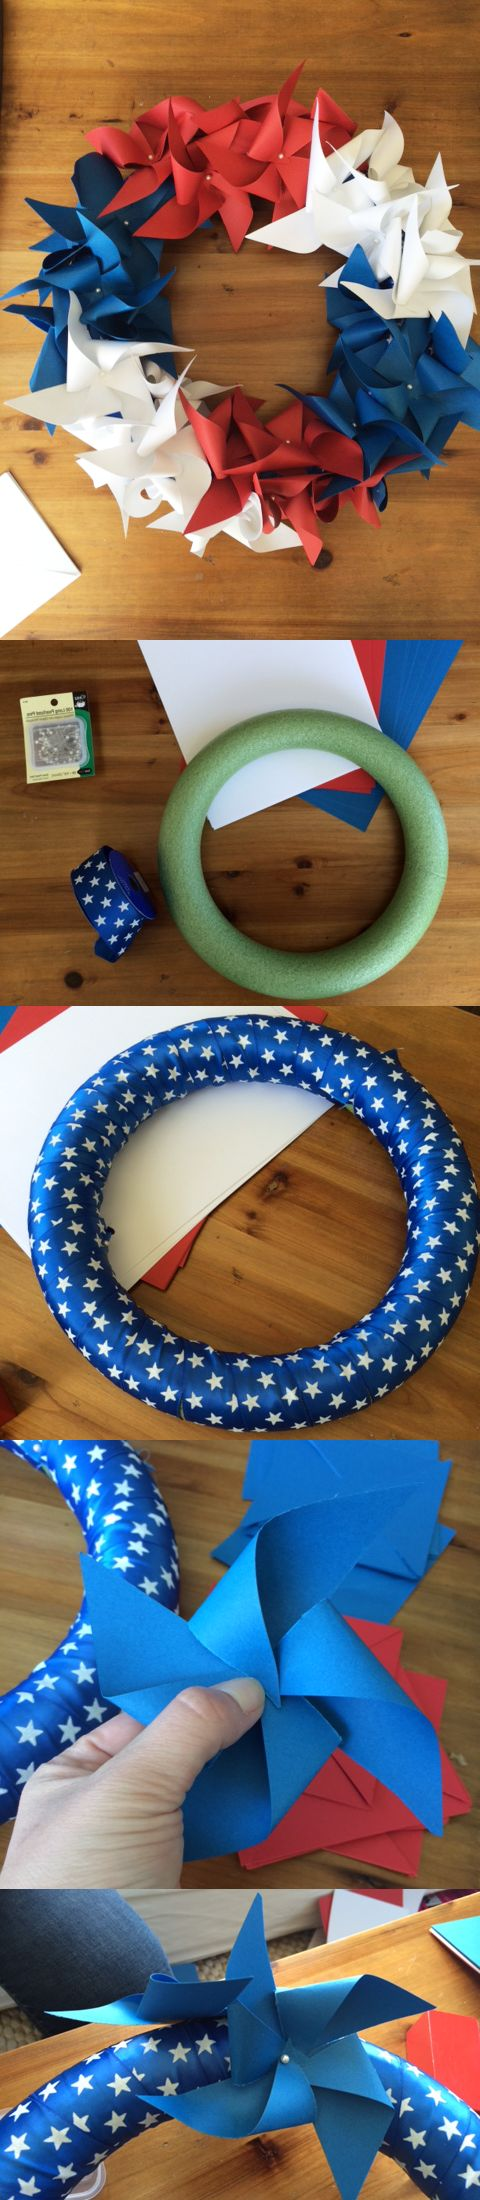 DIY July 4th Pinwheel Wreath | Money Saving Sisters